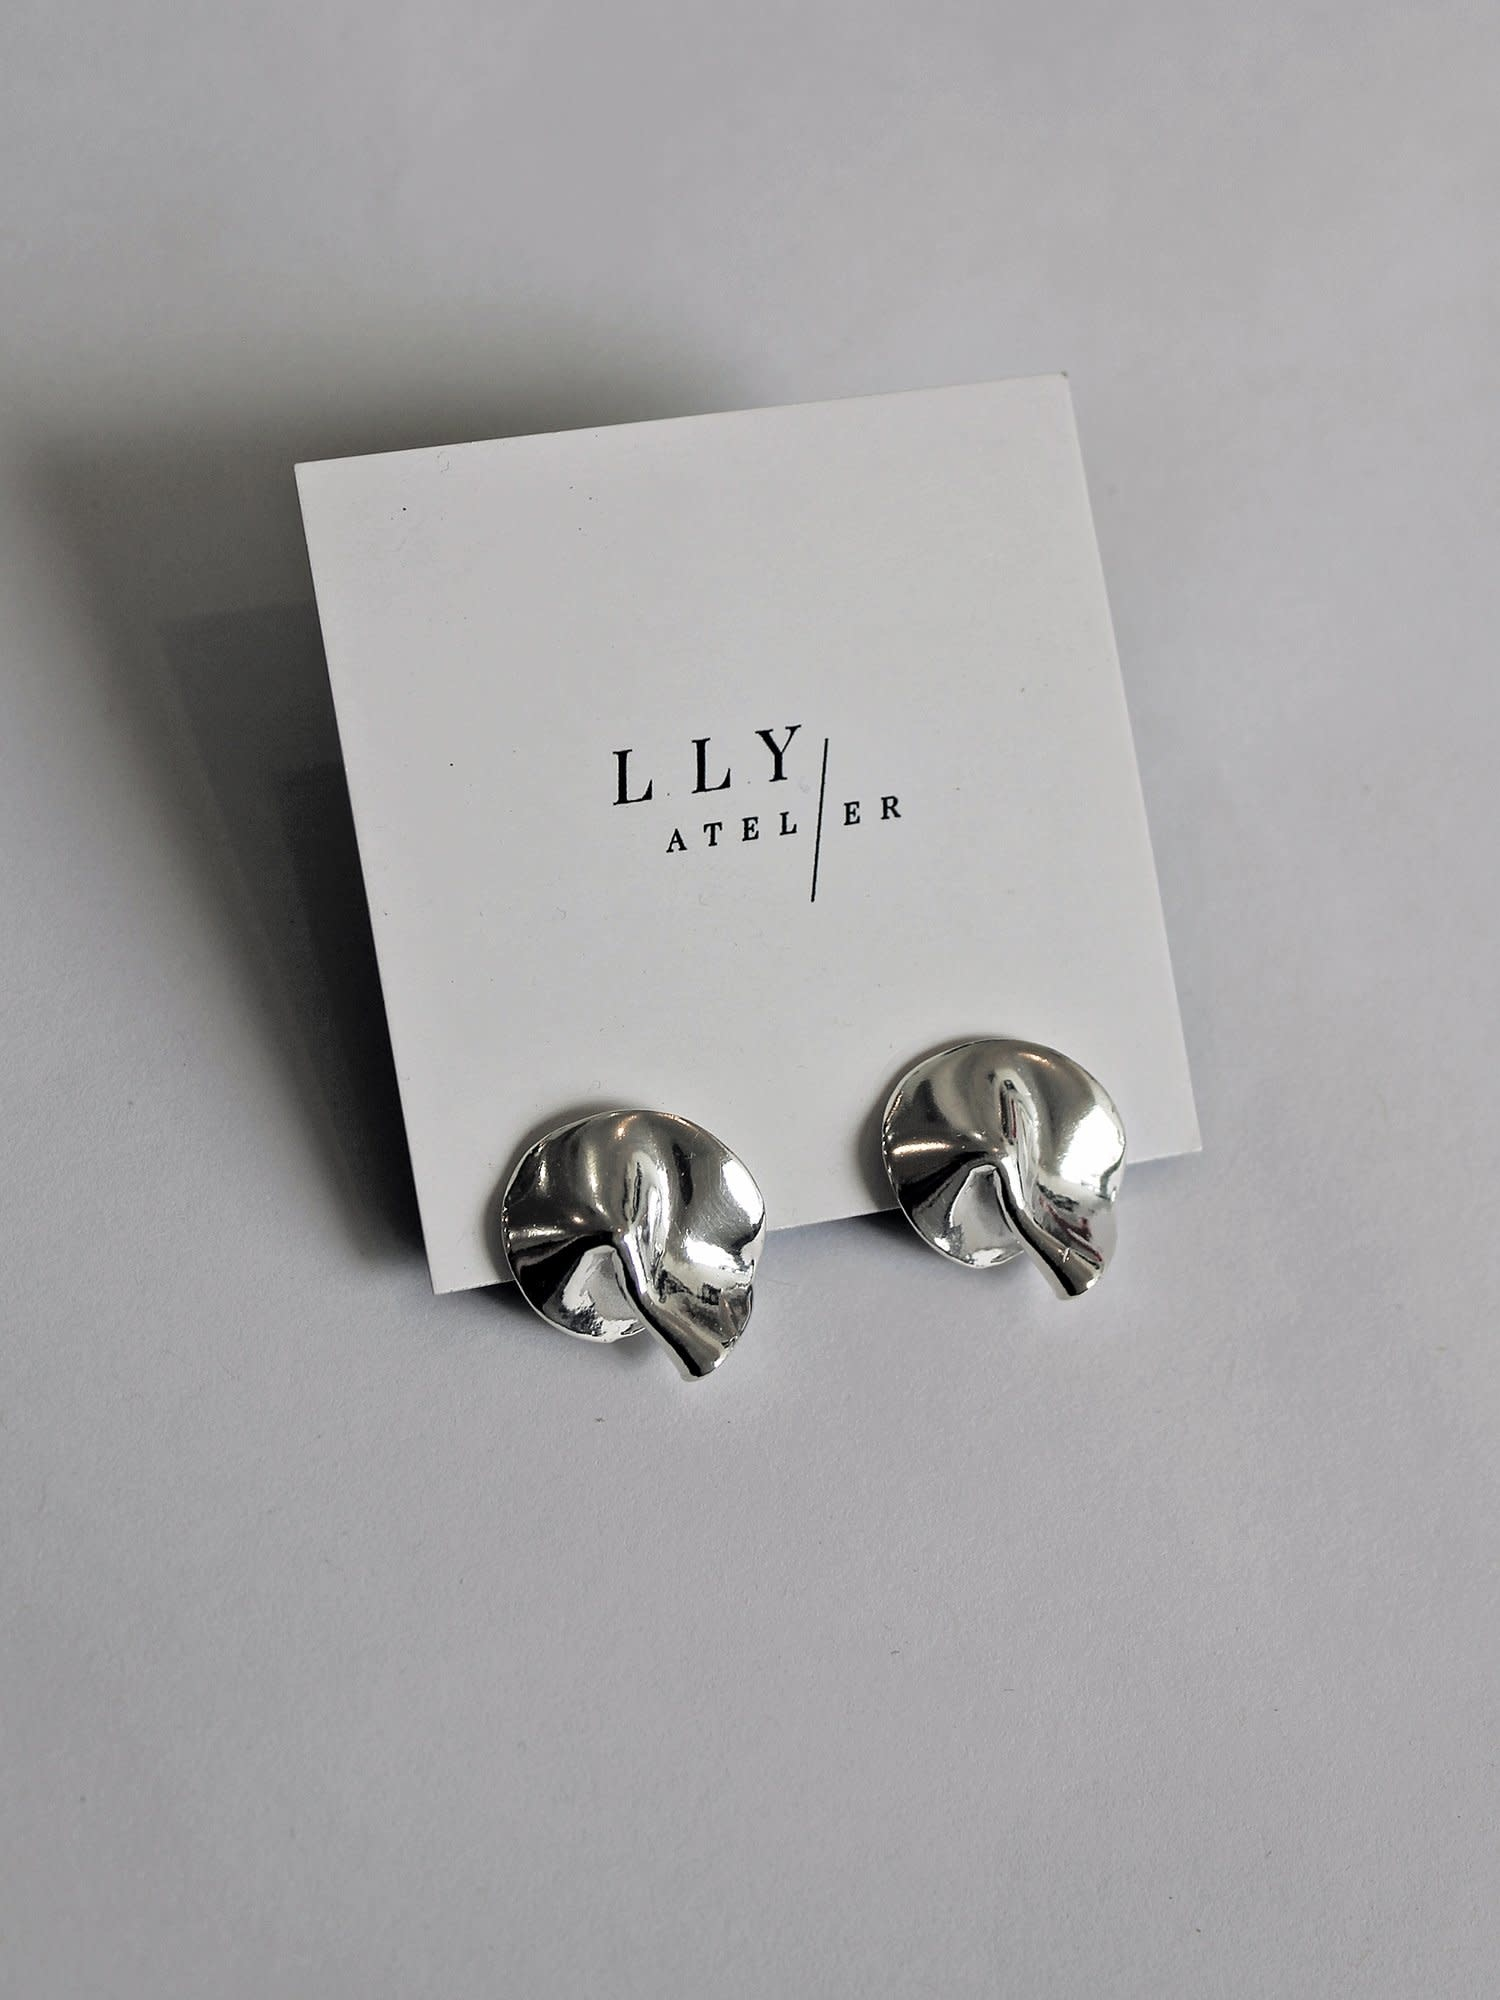 L.L.Y. Altelier Fortune Earrings in Solid SIlver